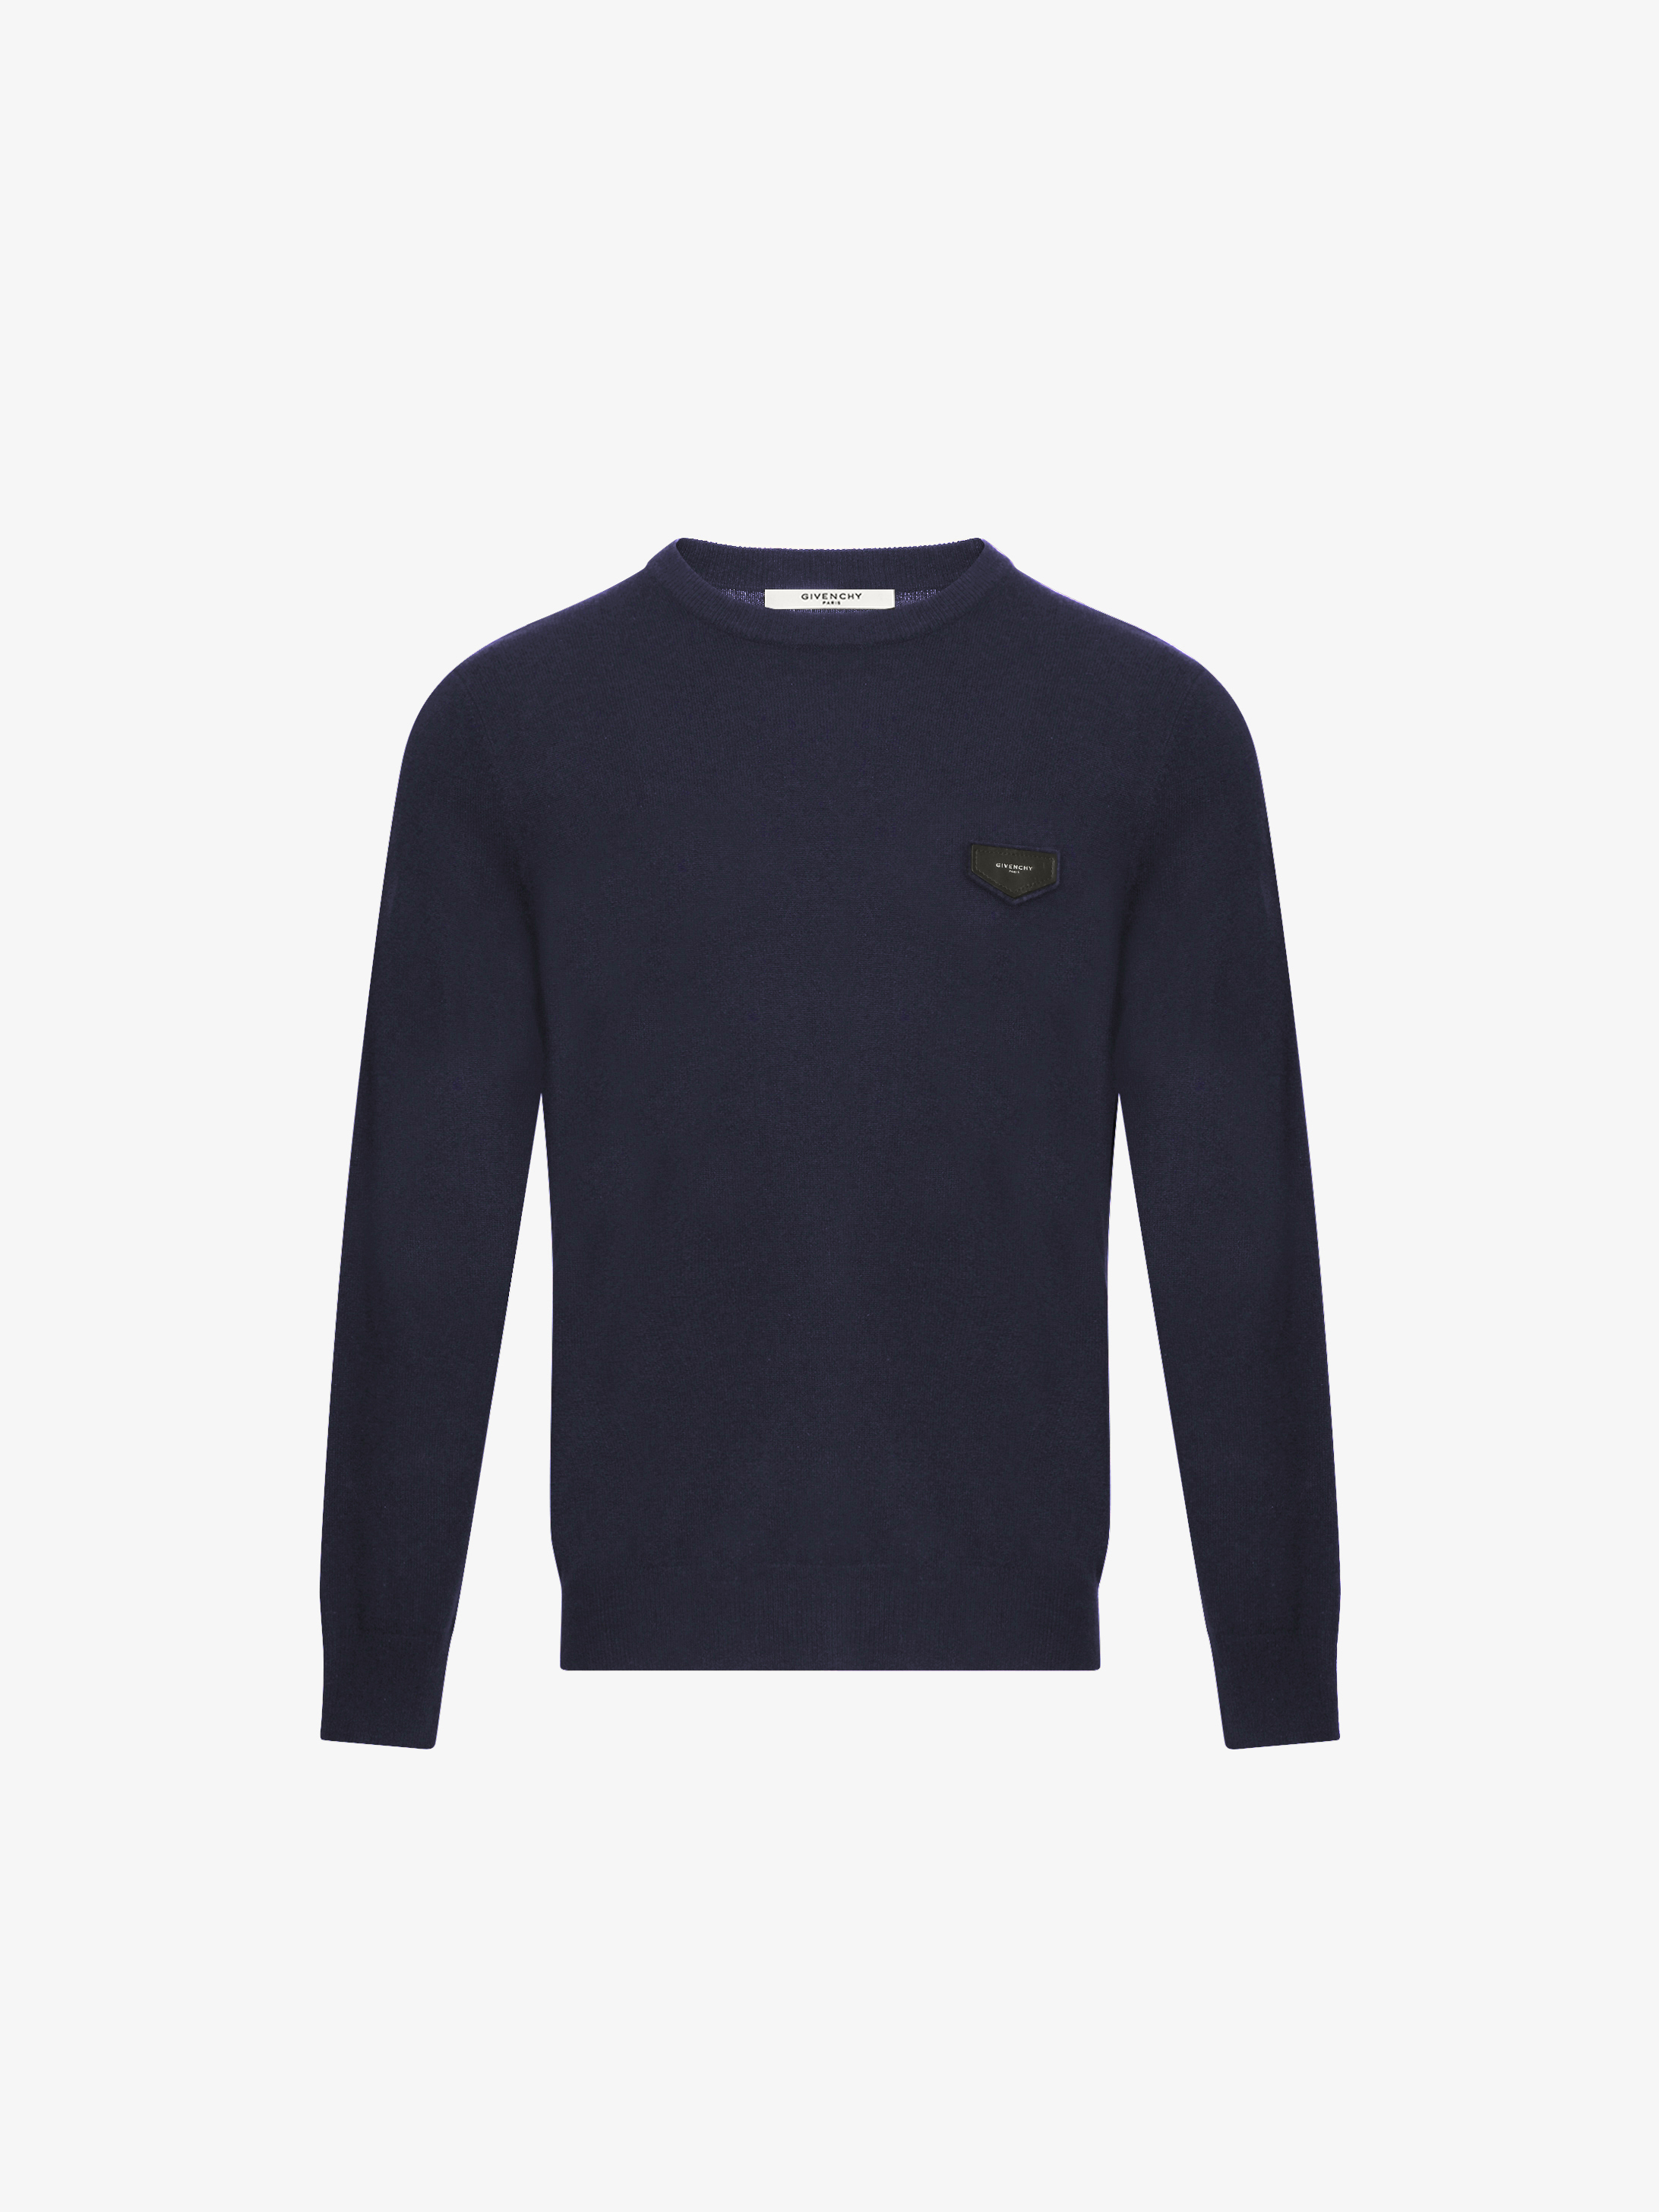 GIVENCHY patch cashmere jumper